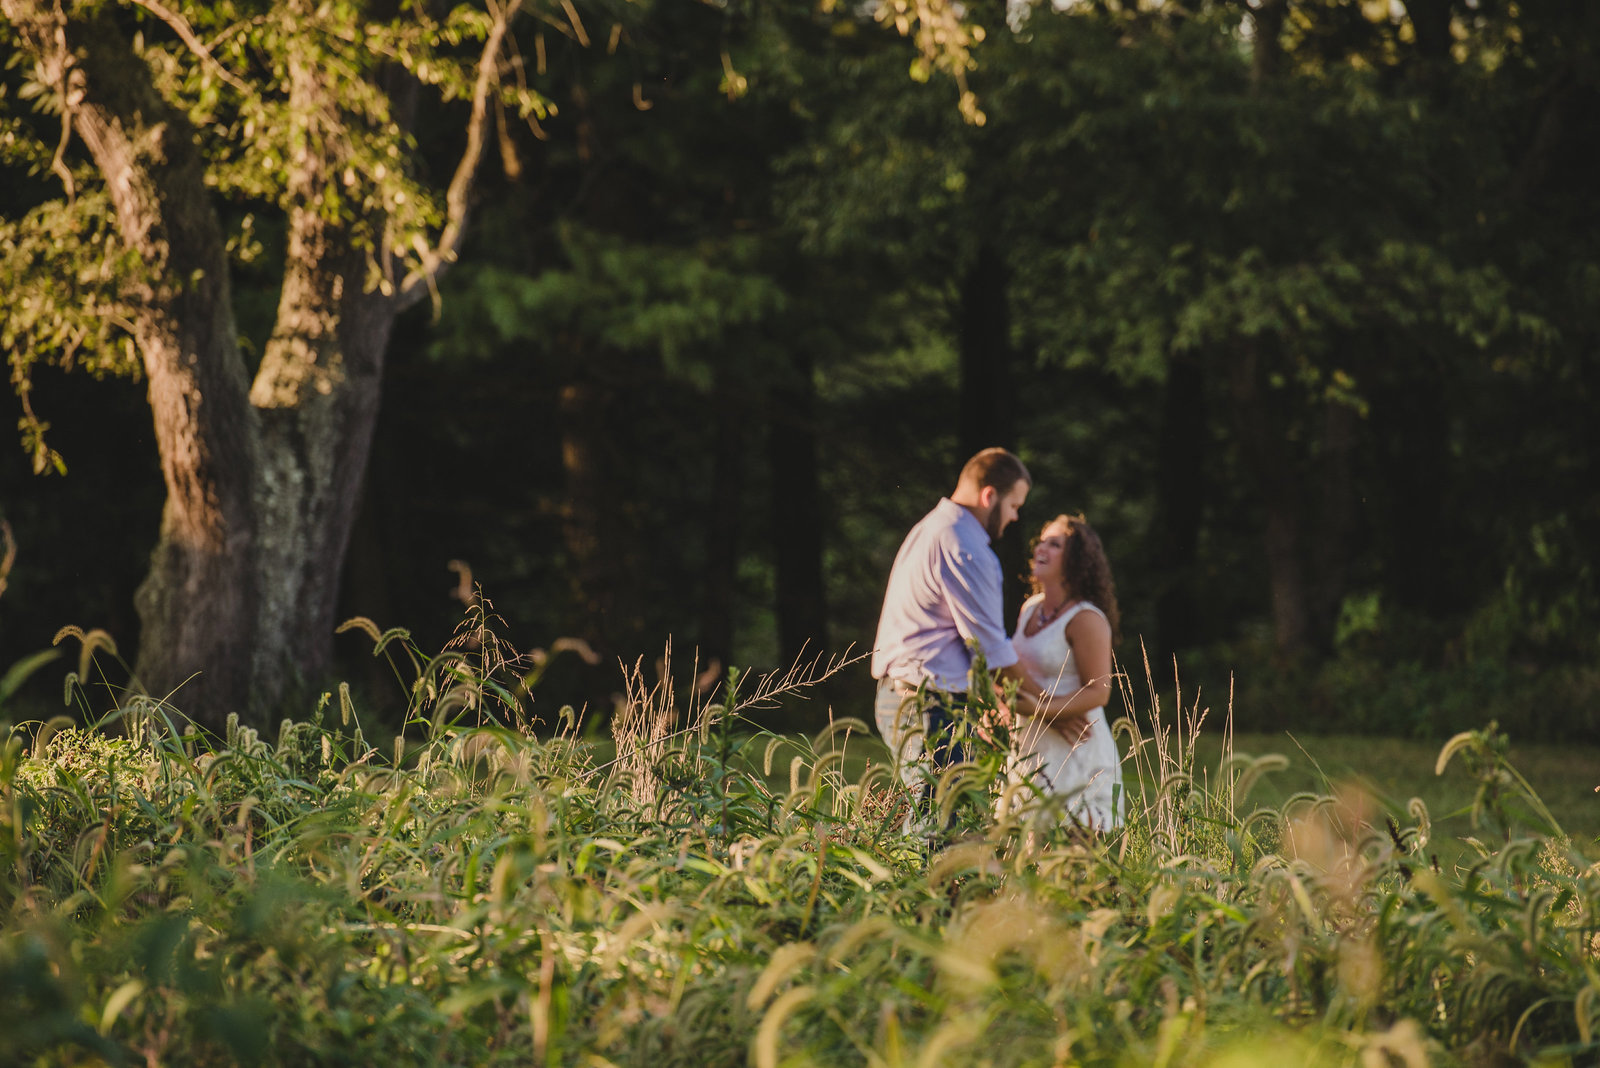 NJ_Rustic_Engagement_Photography100